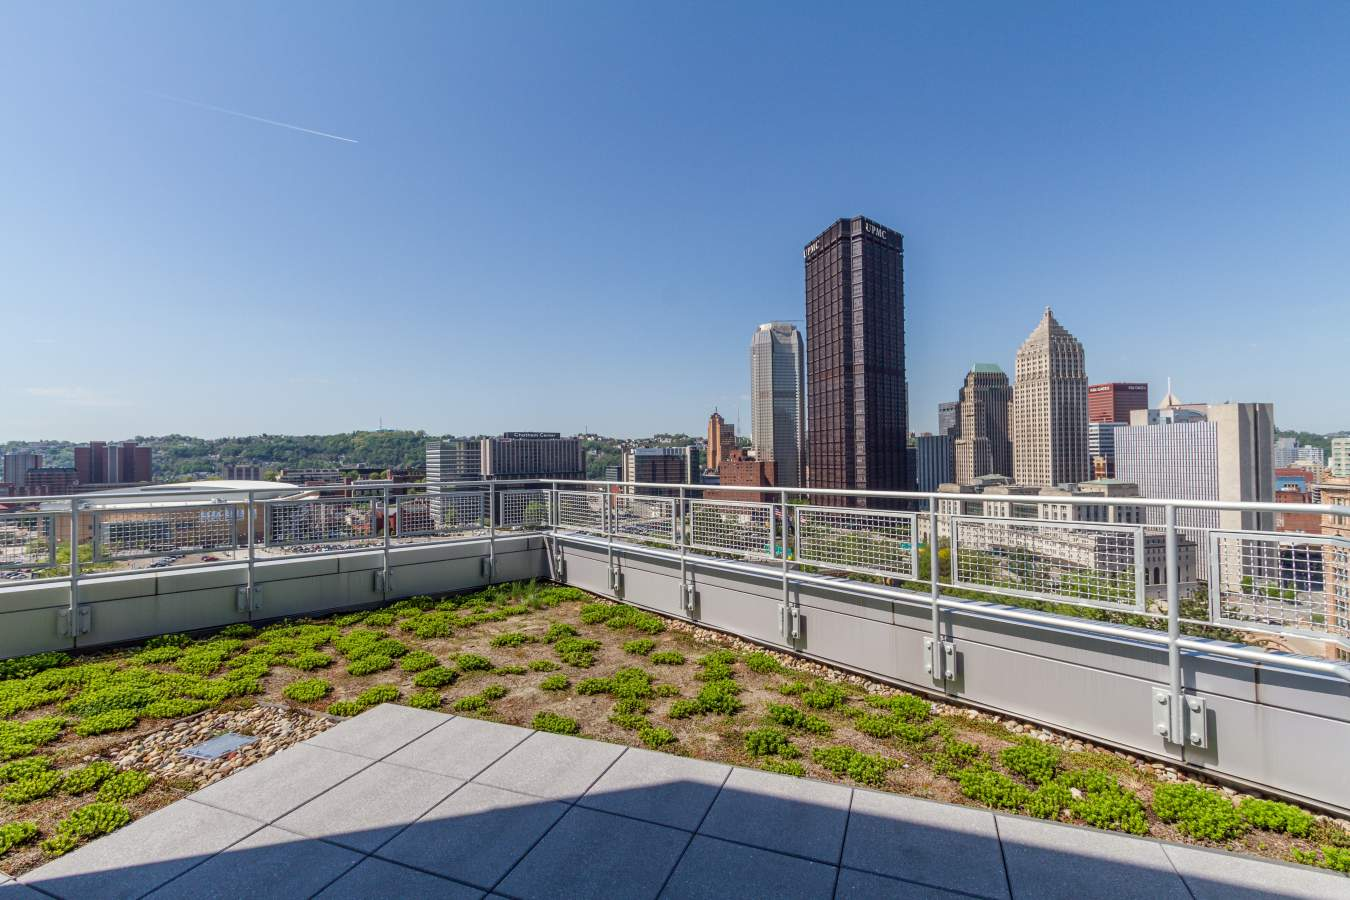 Energy Innovation Center EIC Rooftop Pittsburgh Wedding Venue  Jessica Garda Events1.jpg